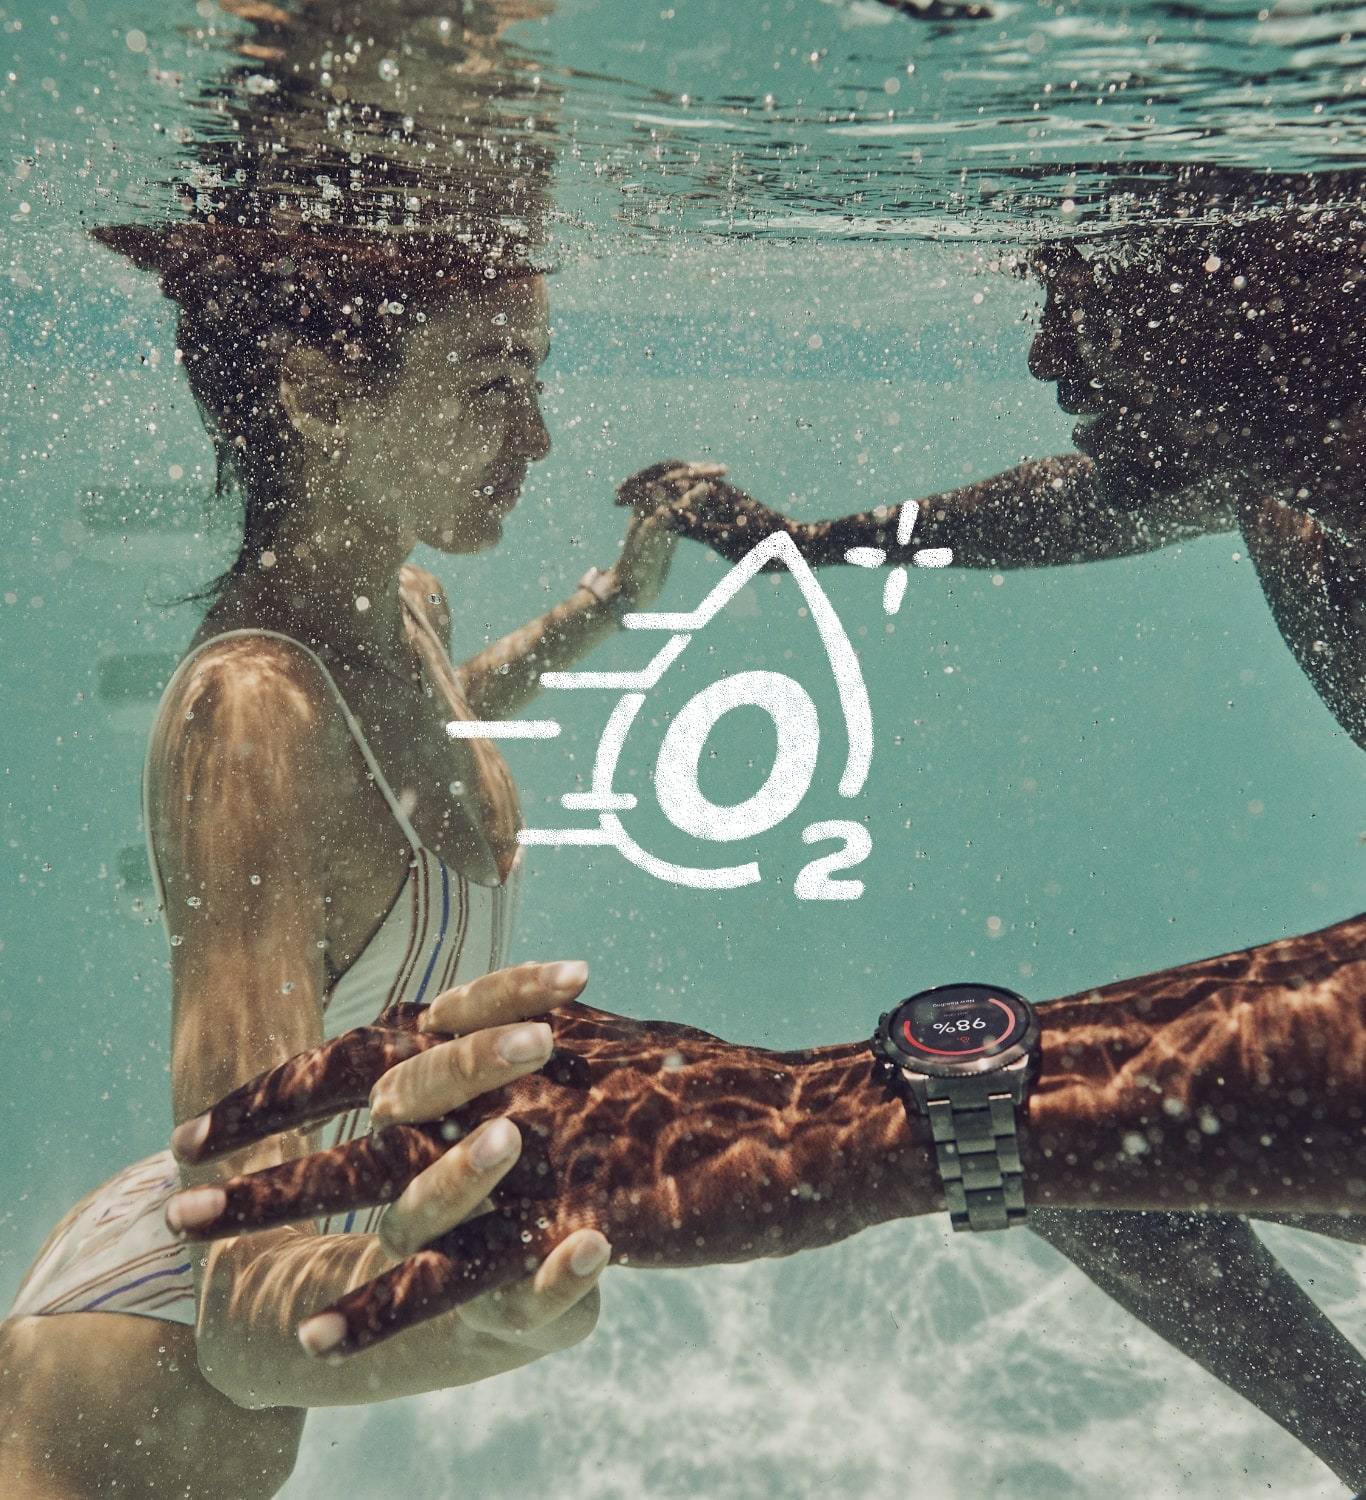 A man and a woman swimming under water with an SpO2 graphic logo.